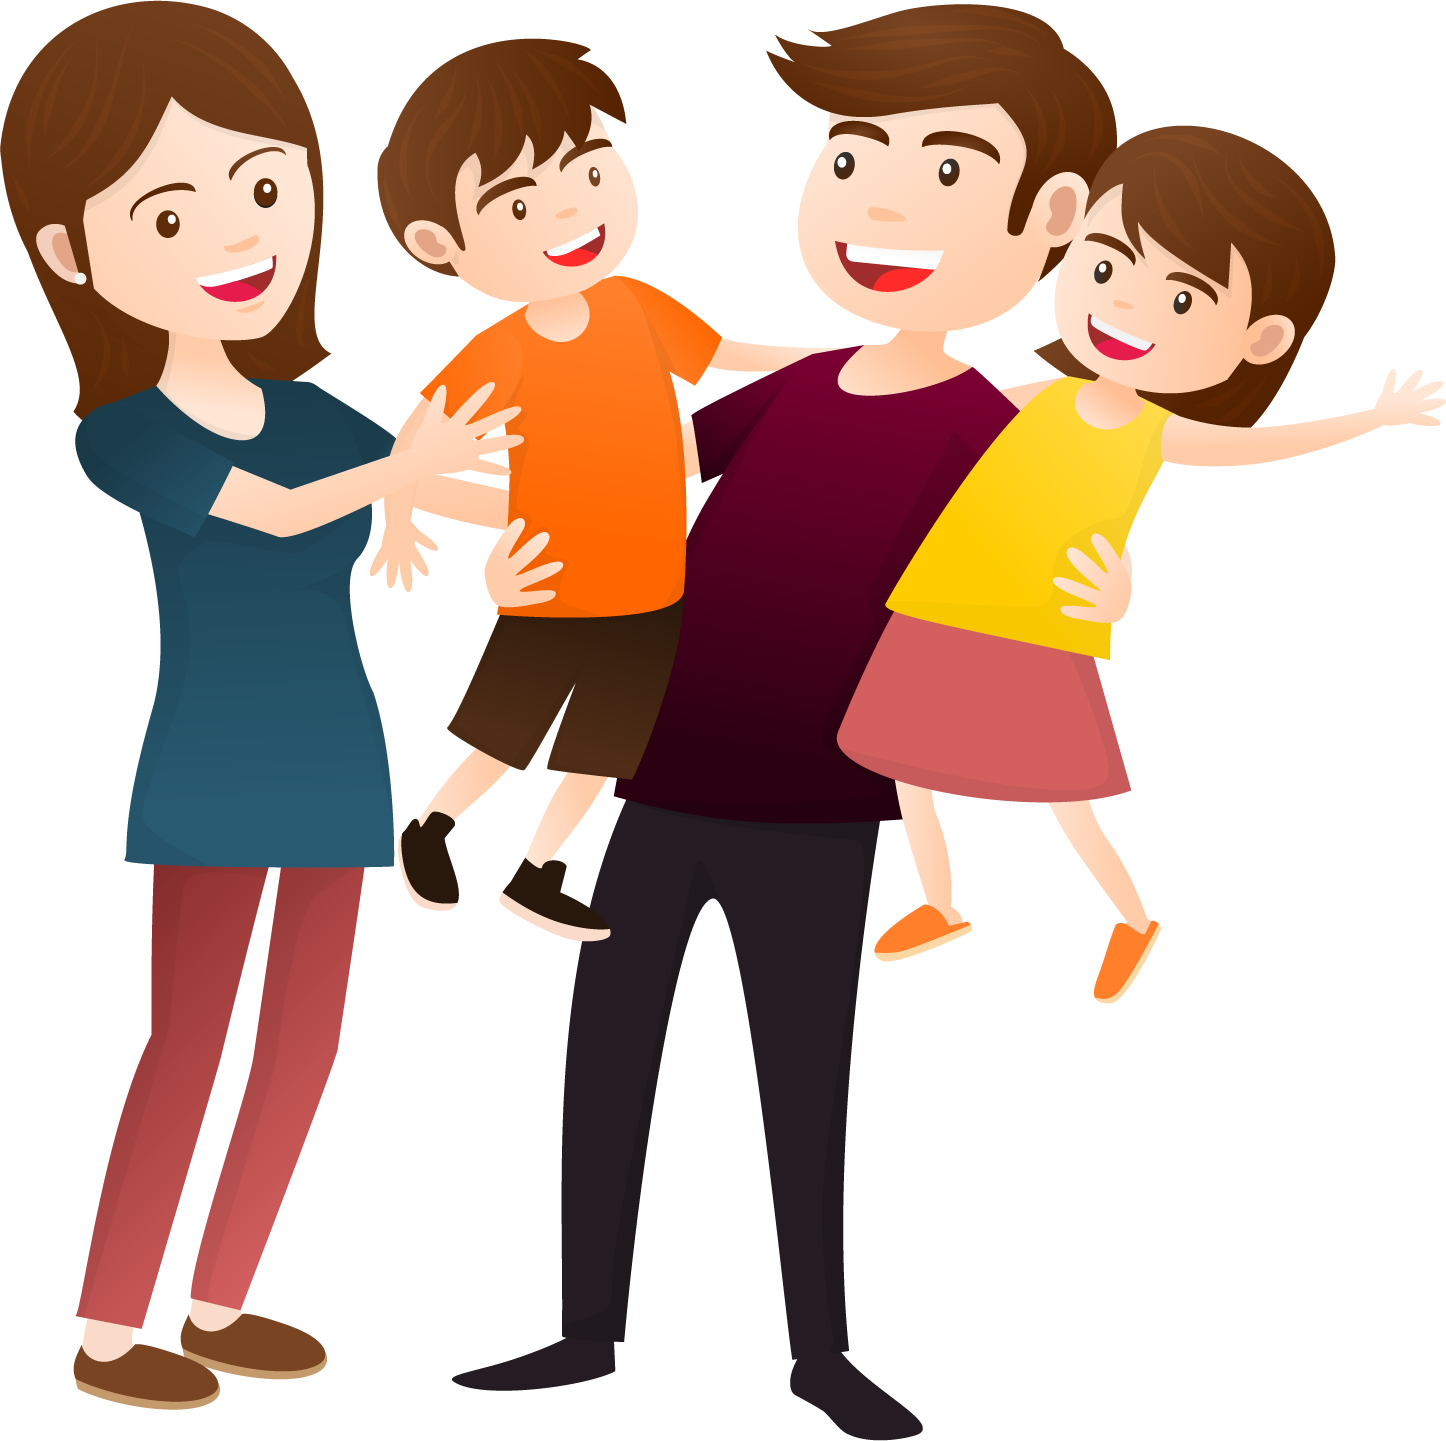 Happy family clipart png. Collection of high